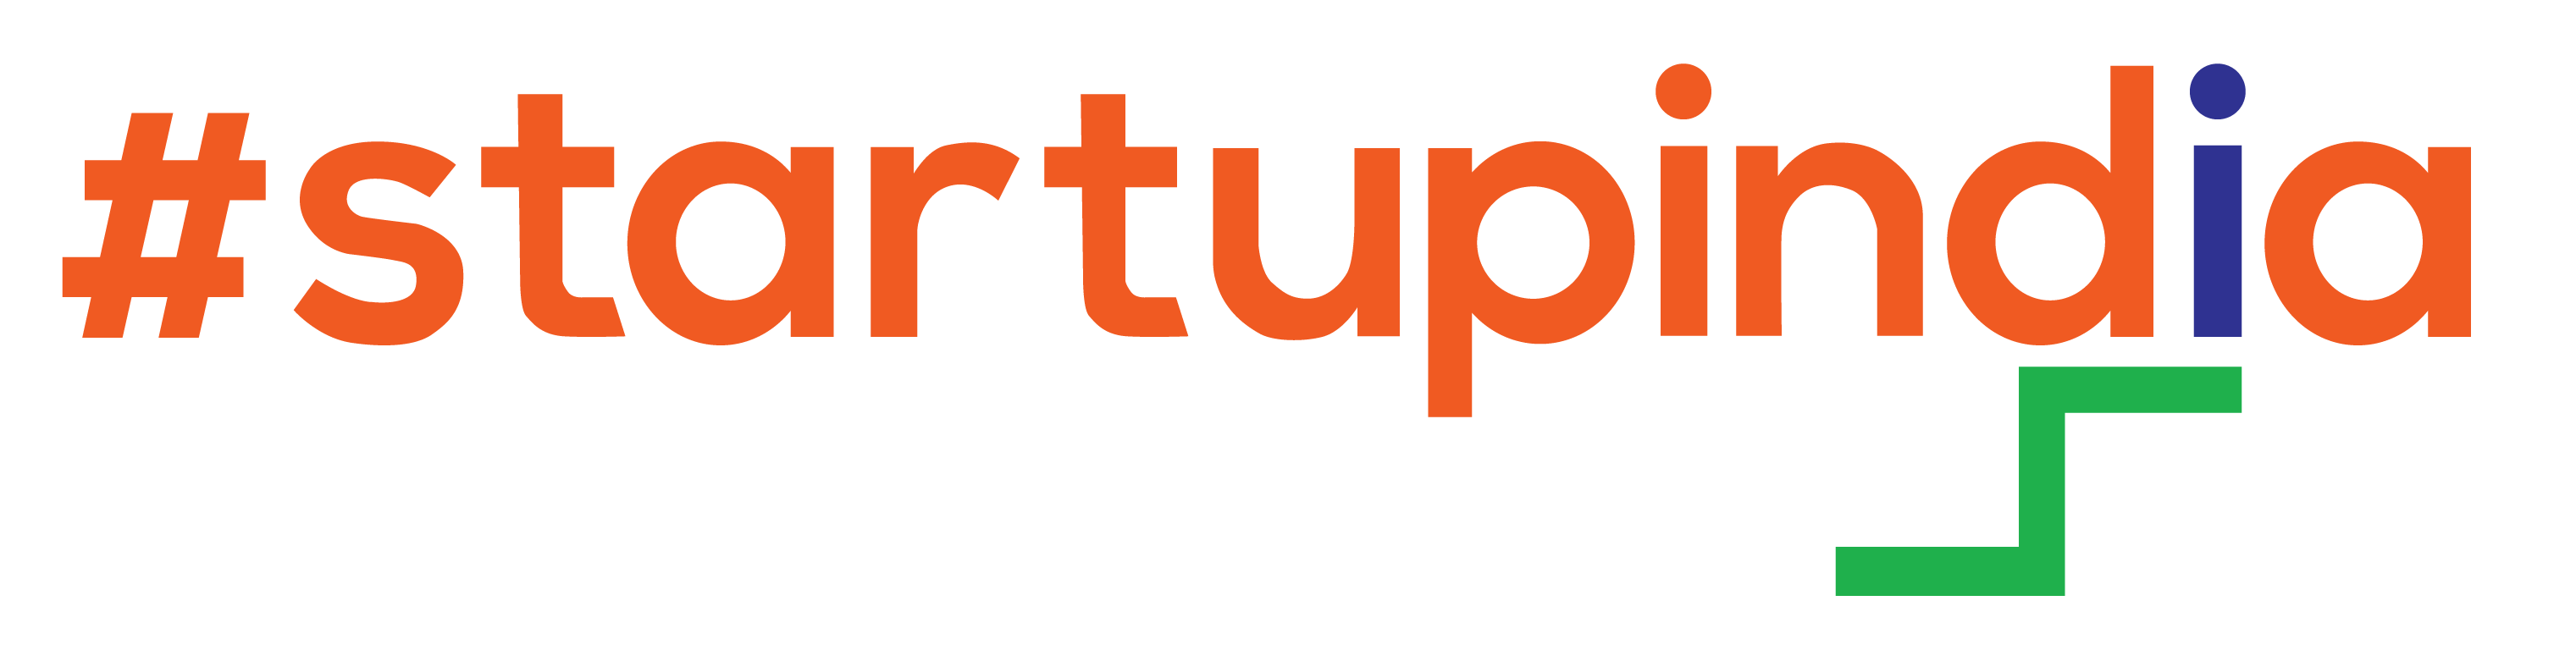 Supported by Startup India